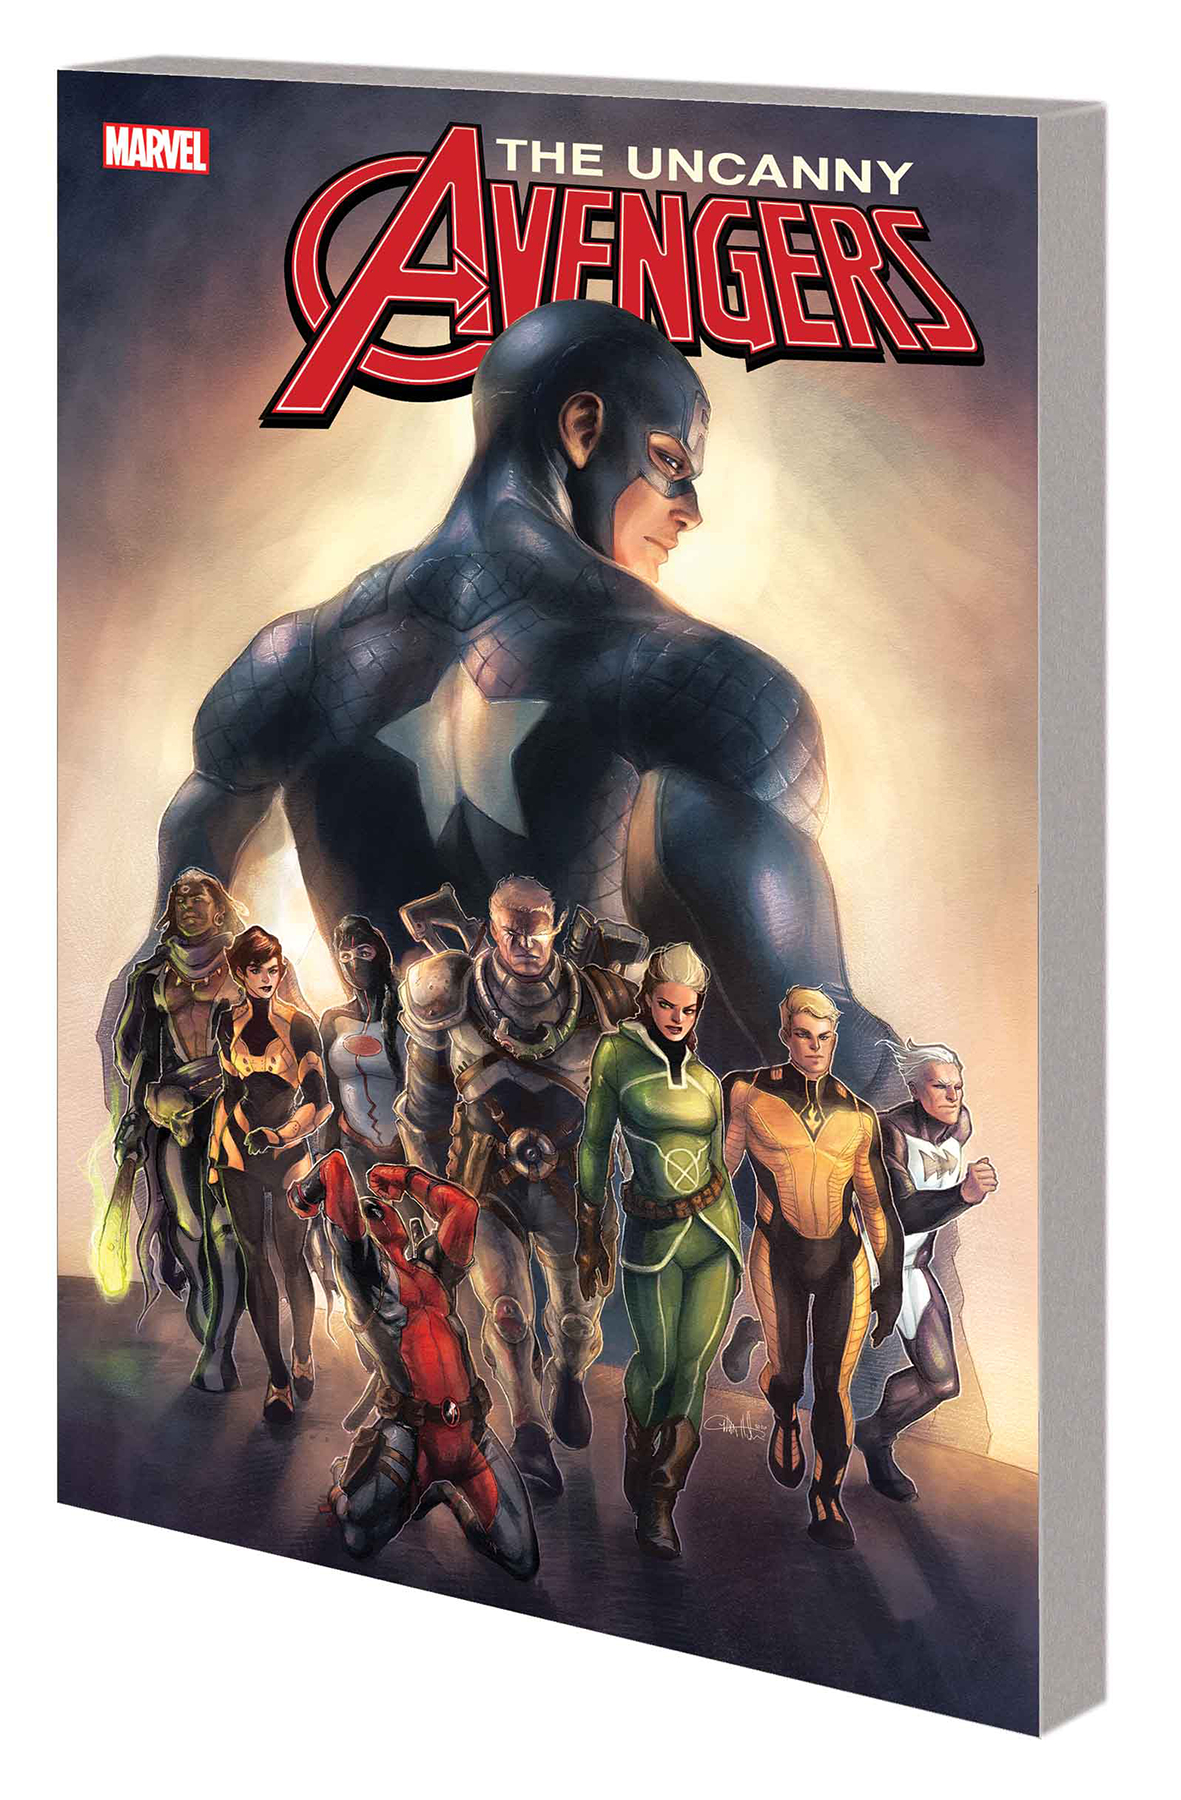 UNCANNY AVENGERS UNITY TP VOL 03 CIVIL WAR II